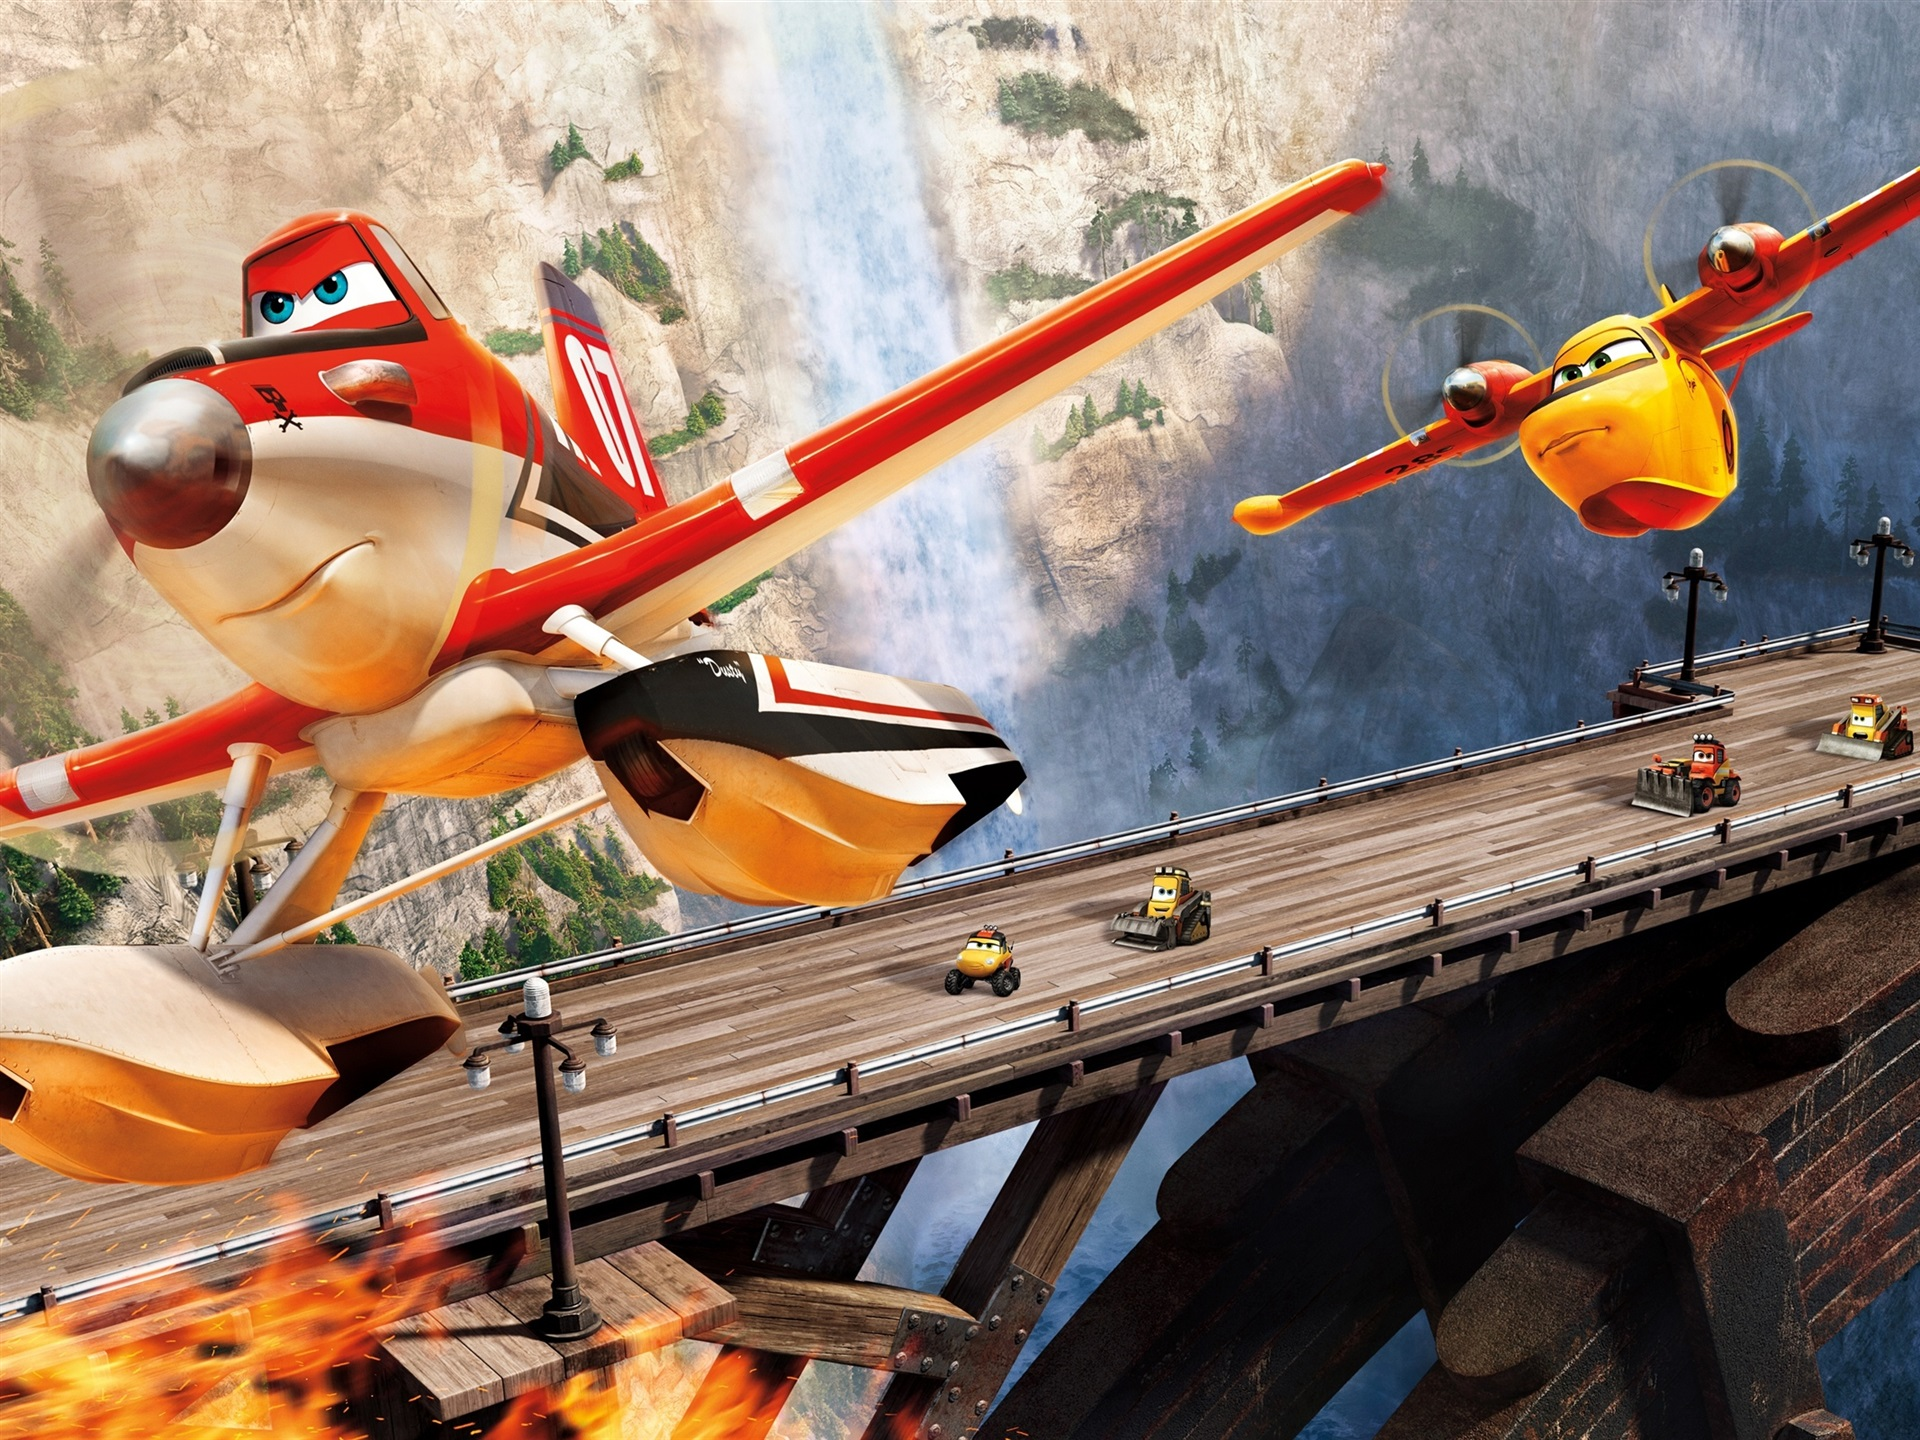 Download Wallpaper 1920x1440 Planes: Fire and Rescue HD ...